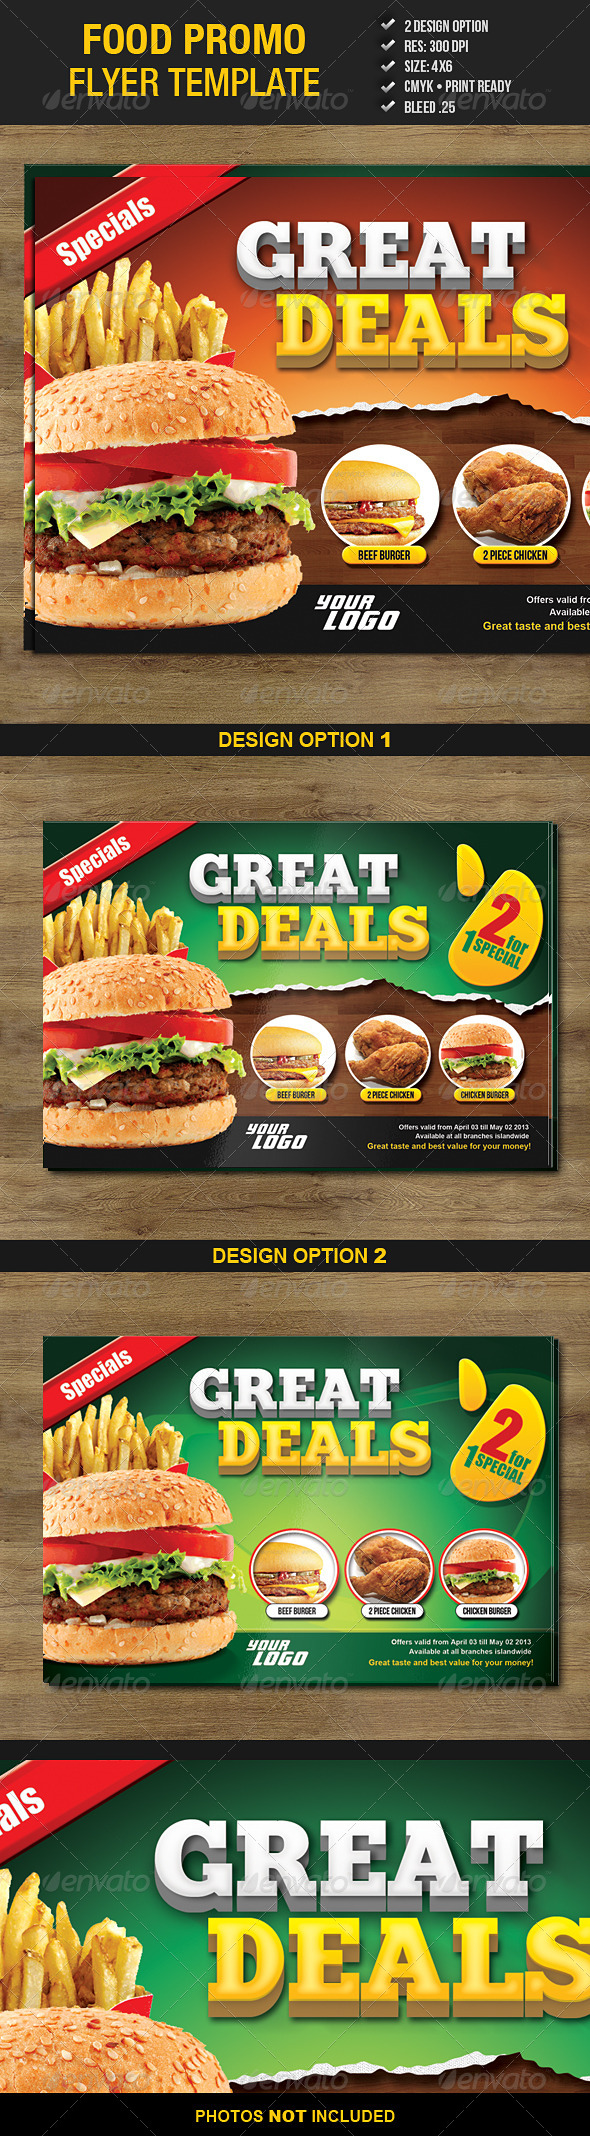 GraphicRiver Food Promo Flyer Template 4443655